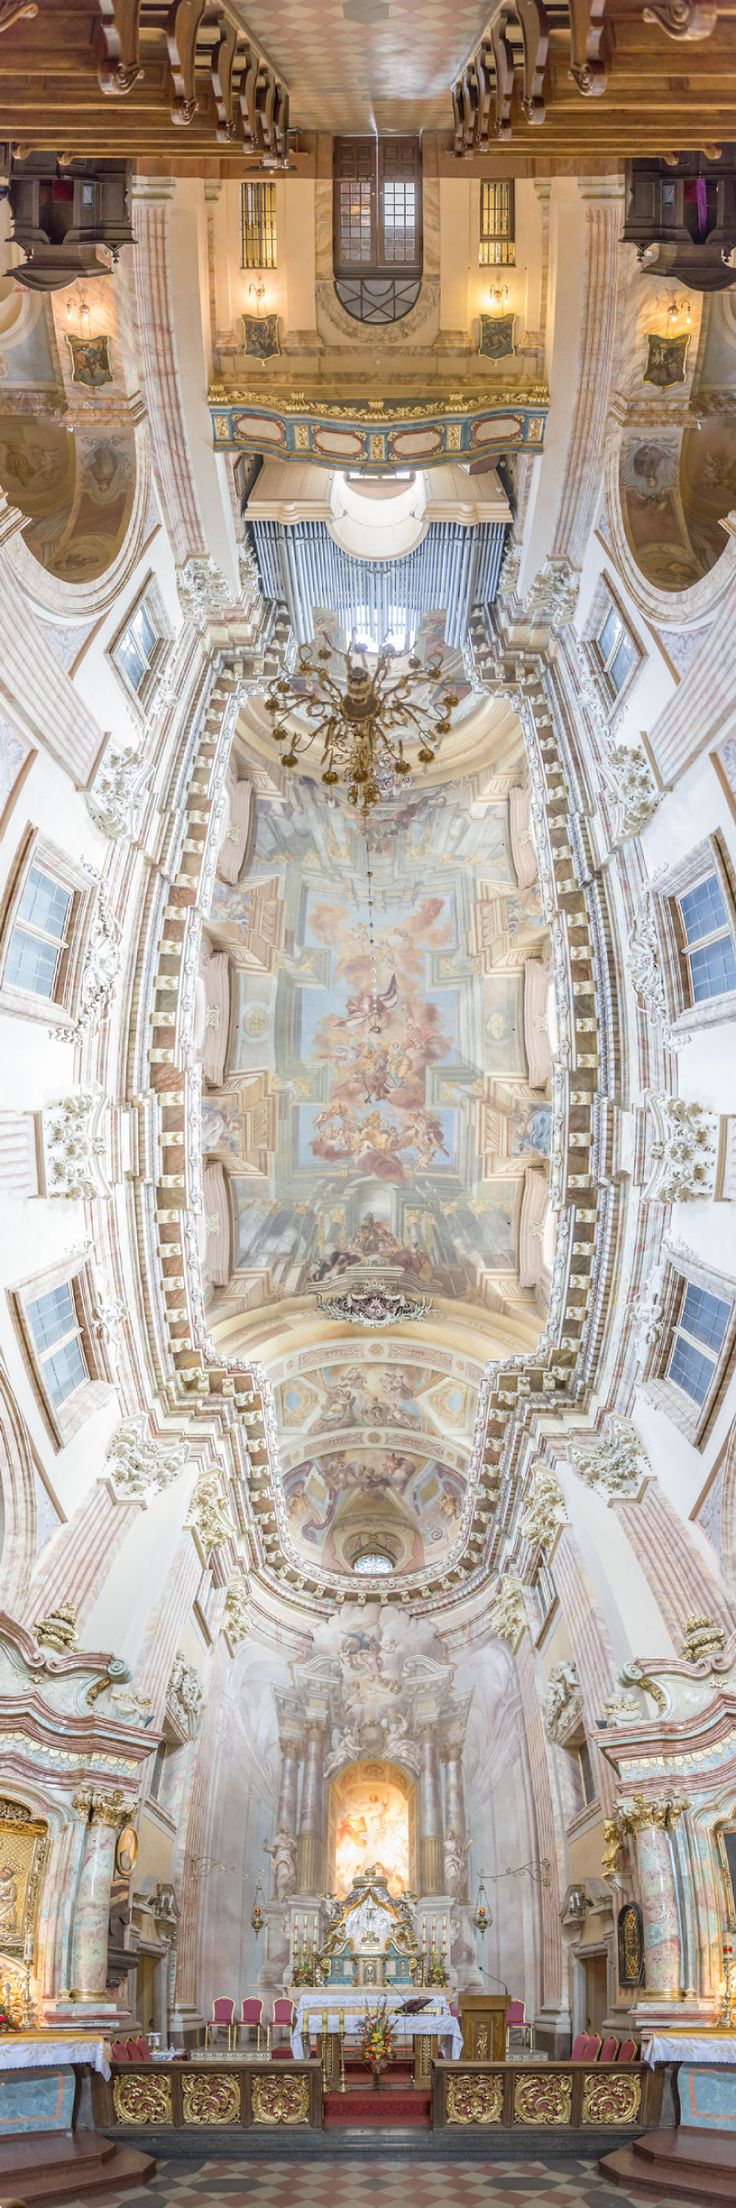 Vertical Churches: I Photograph Churches Around The World From The Perfect Perspective   Bored Panda